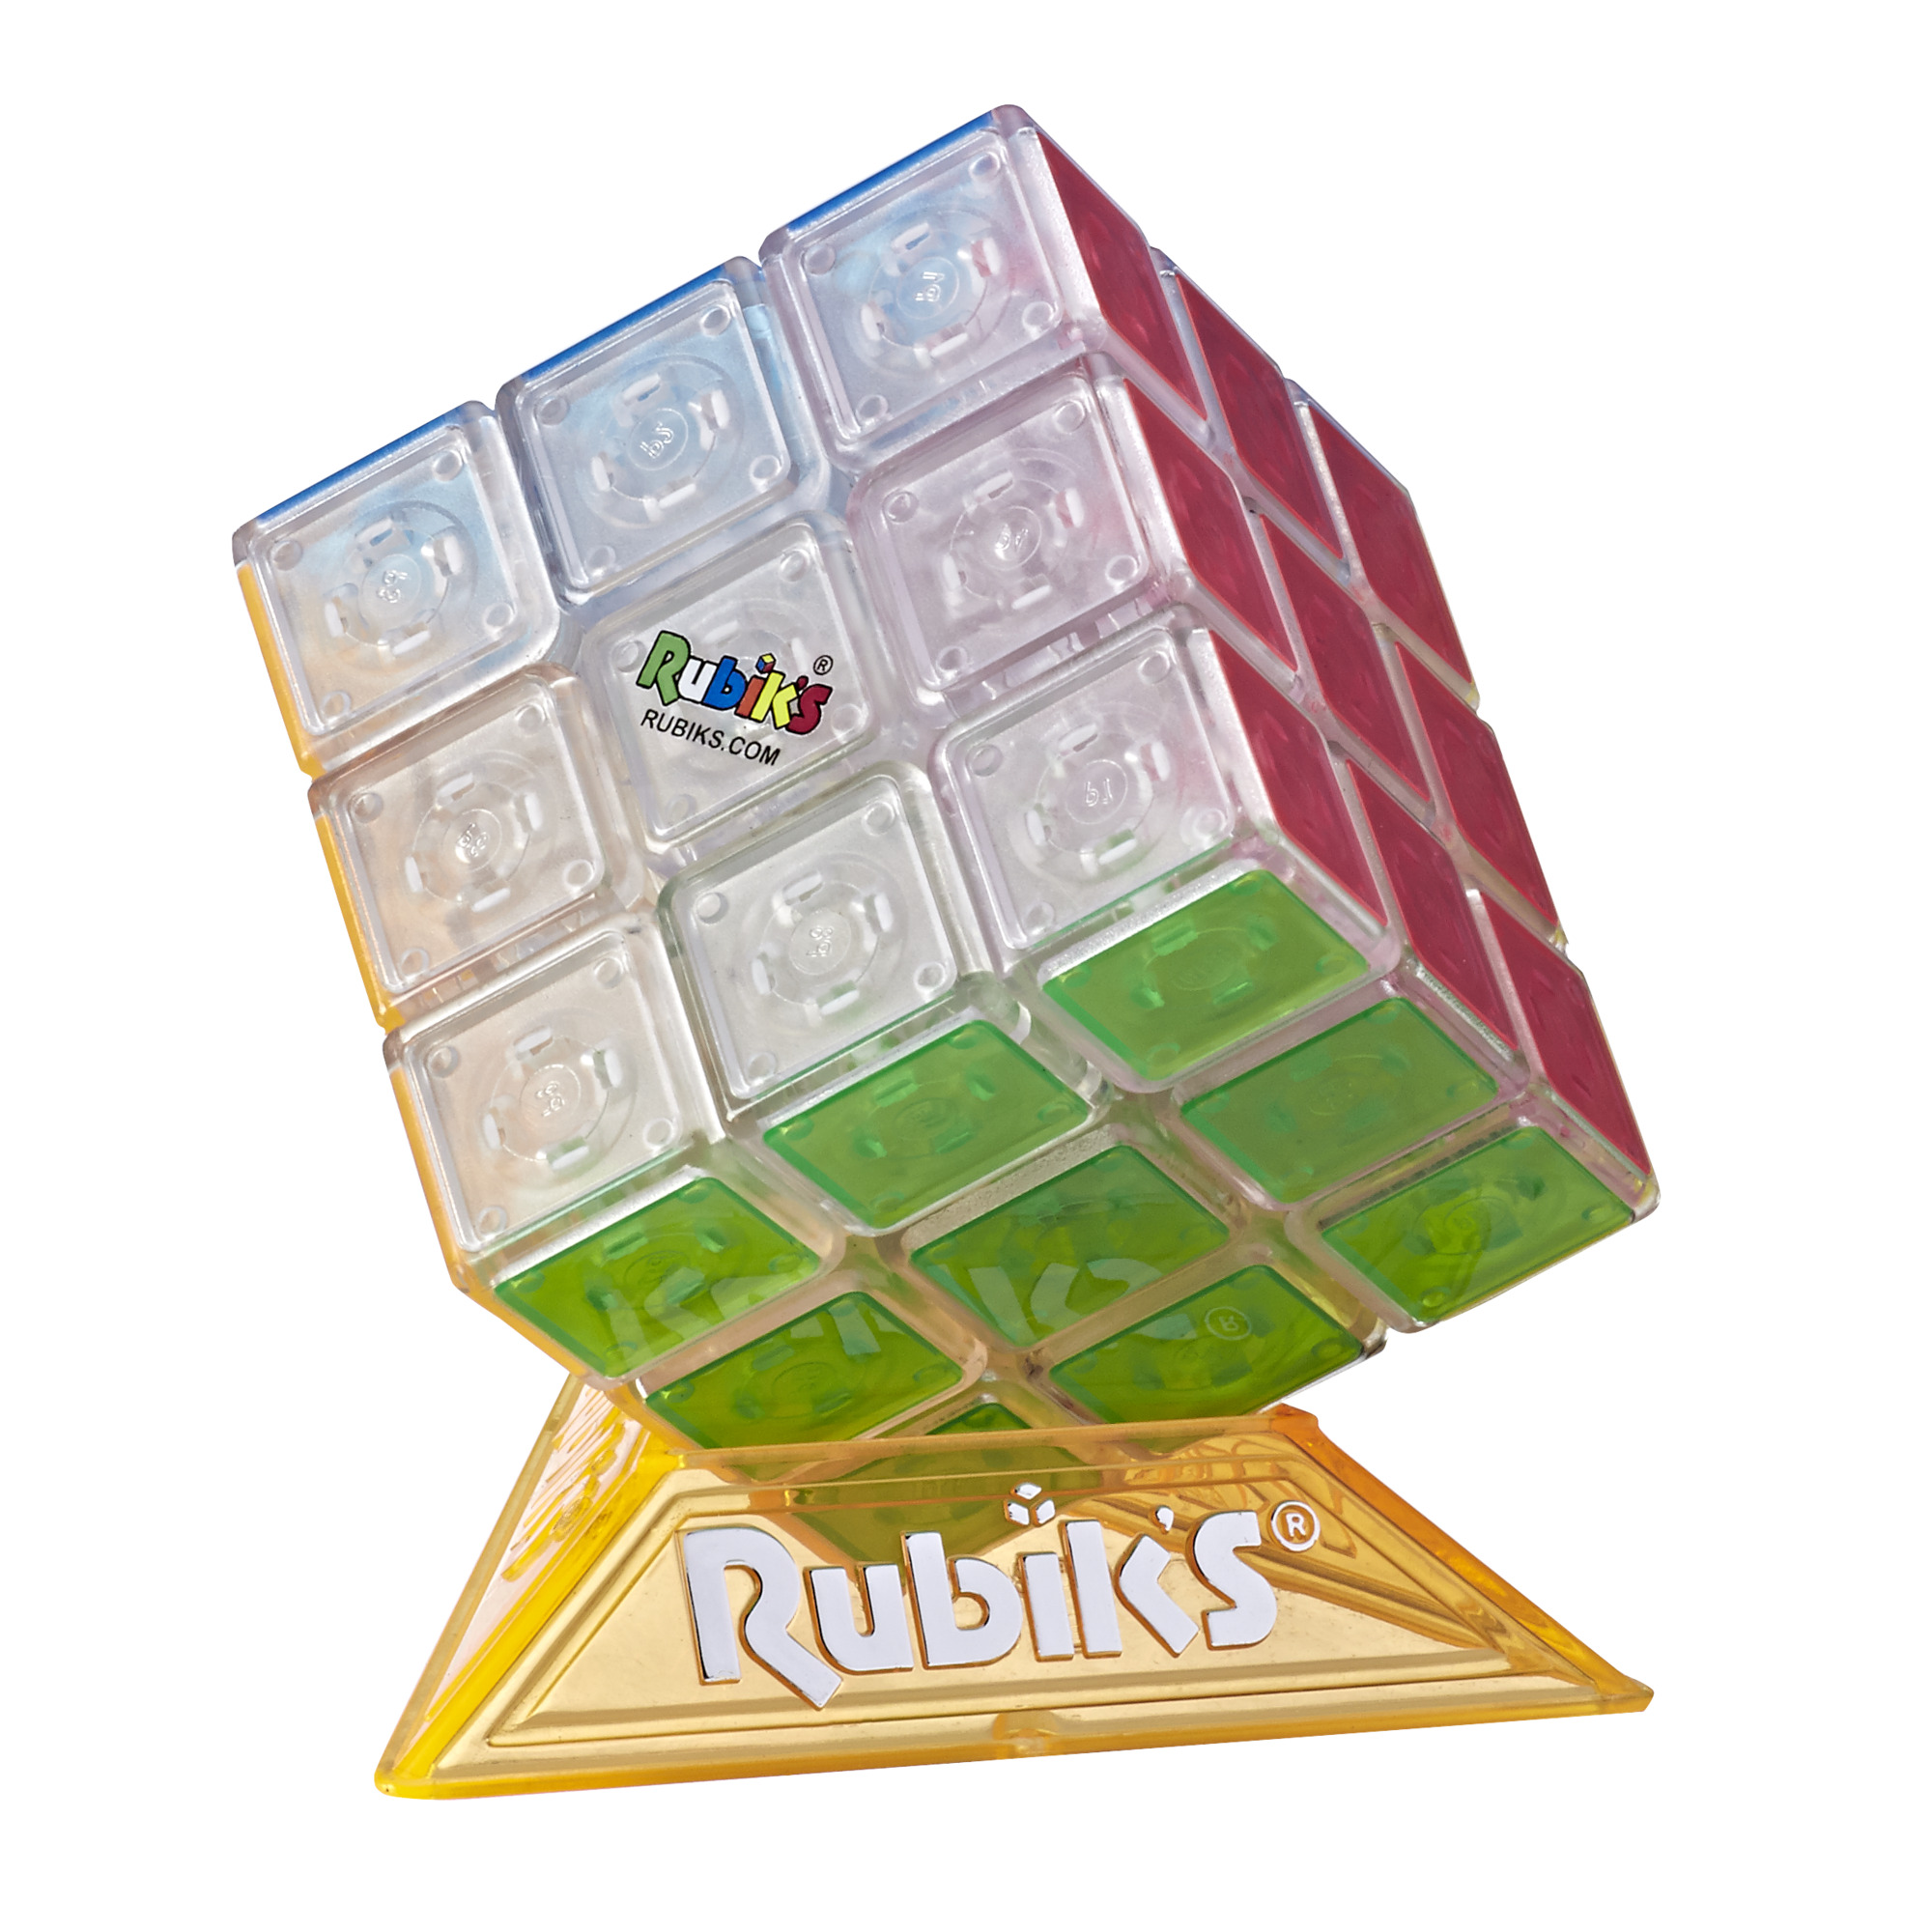 Rubik's Cube Neon Pop 3 x 3 Puzzle for Kids